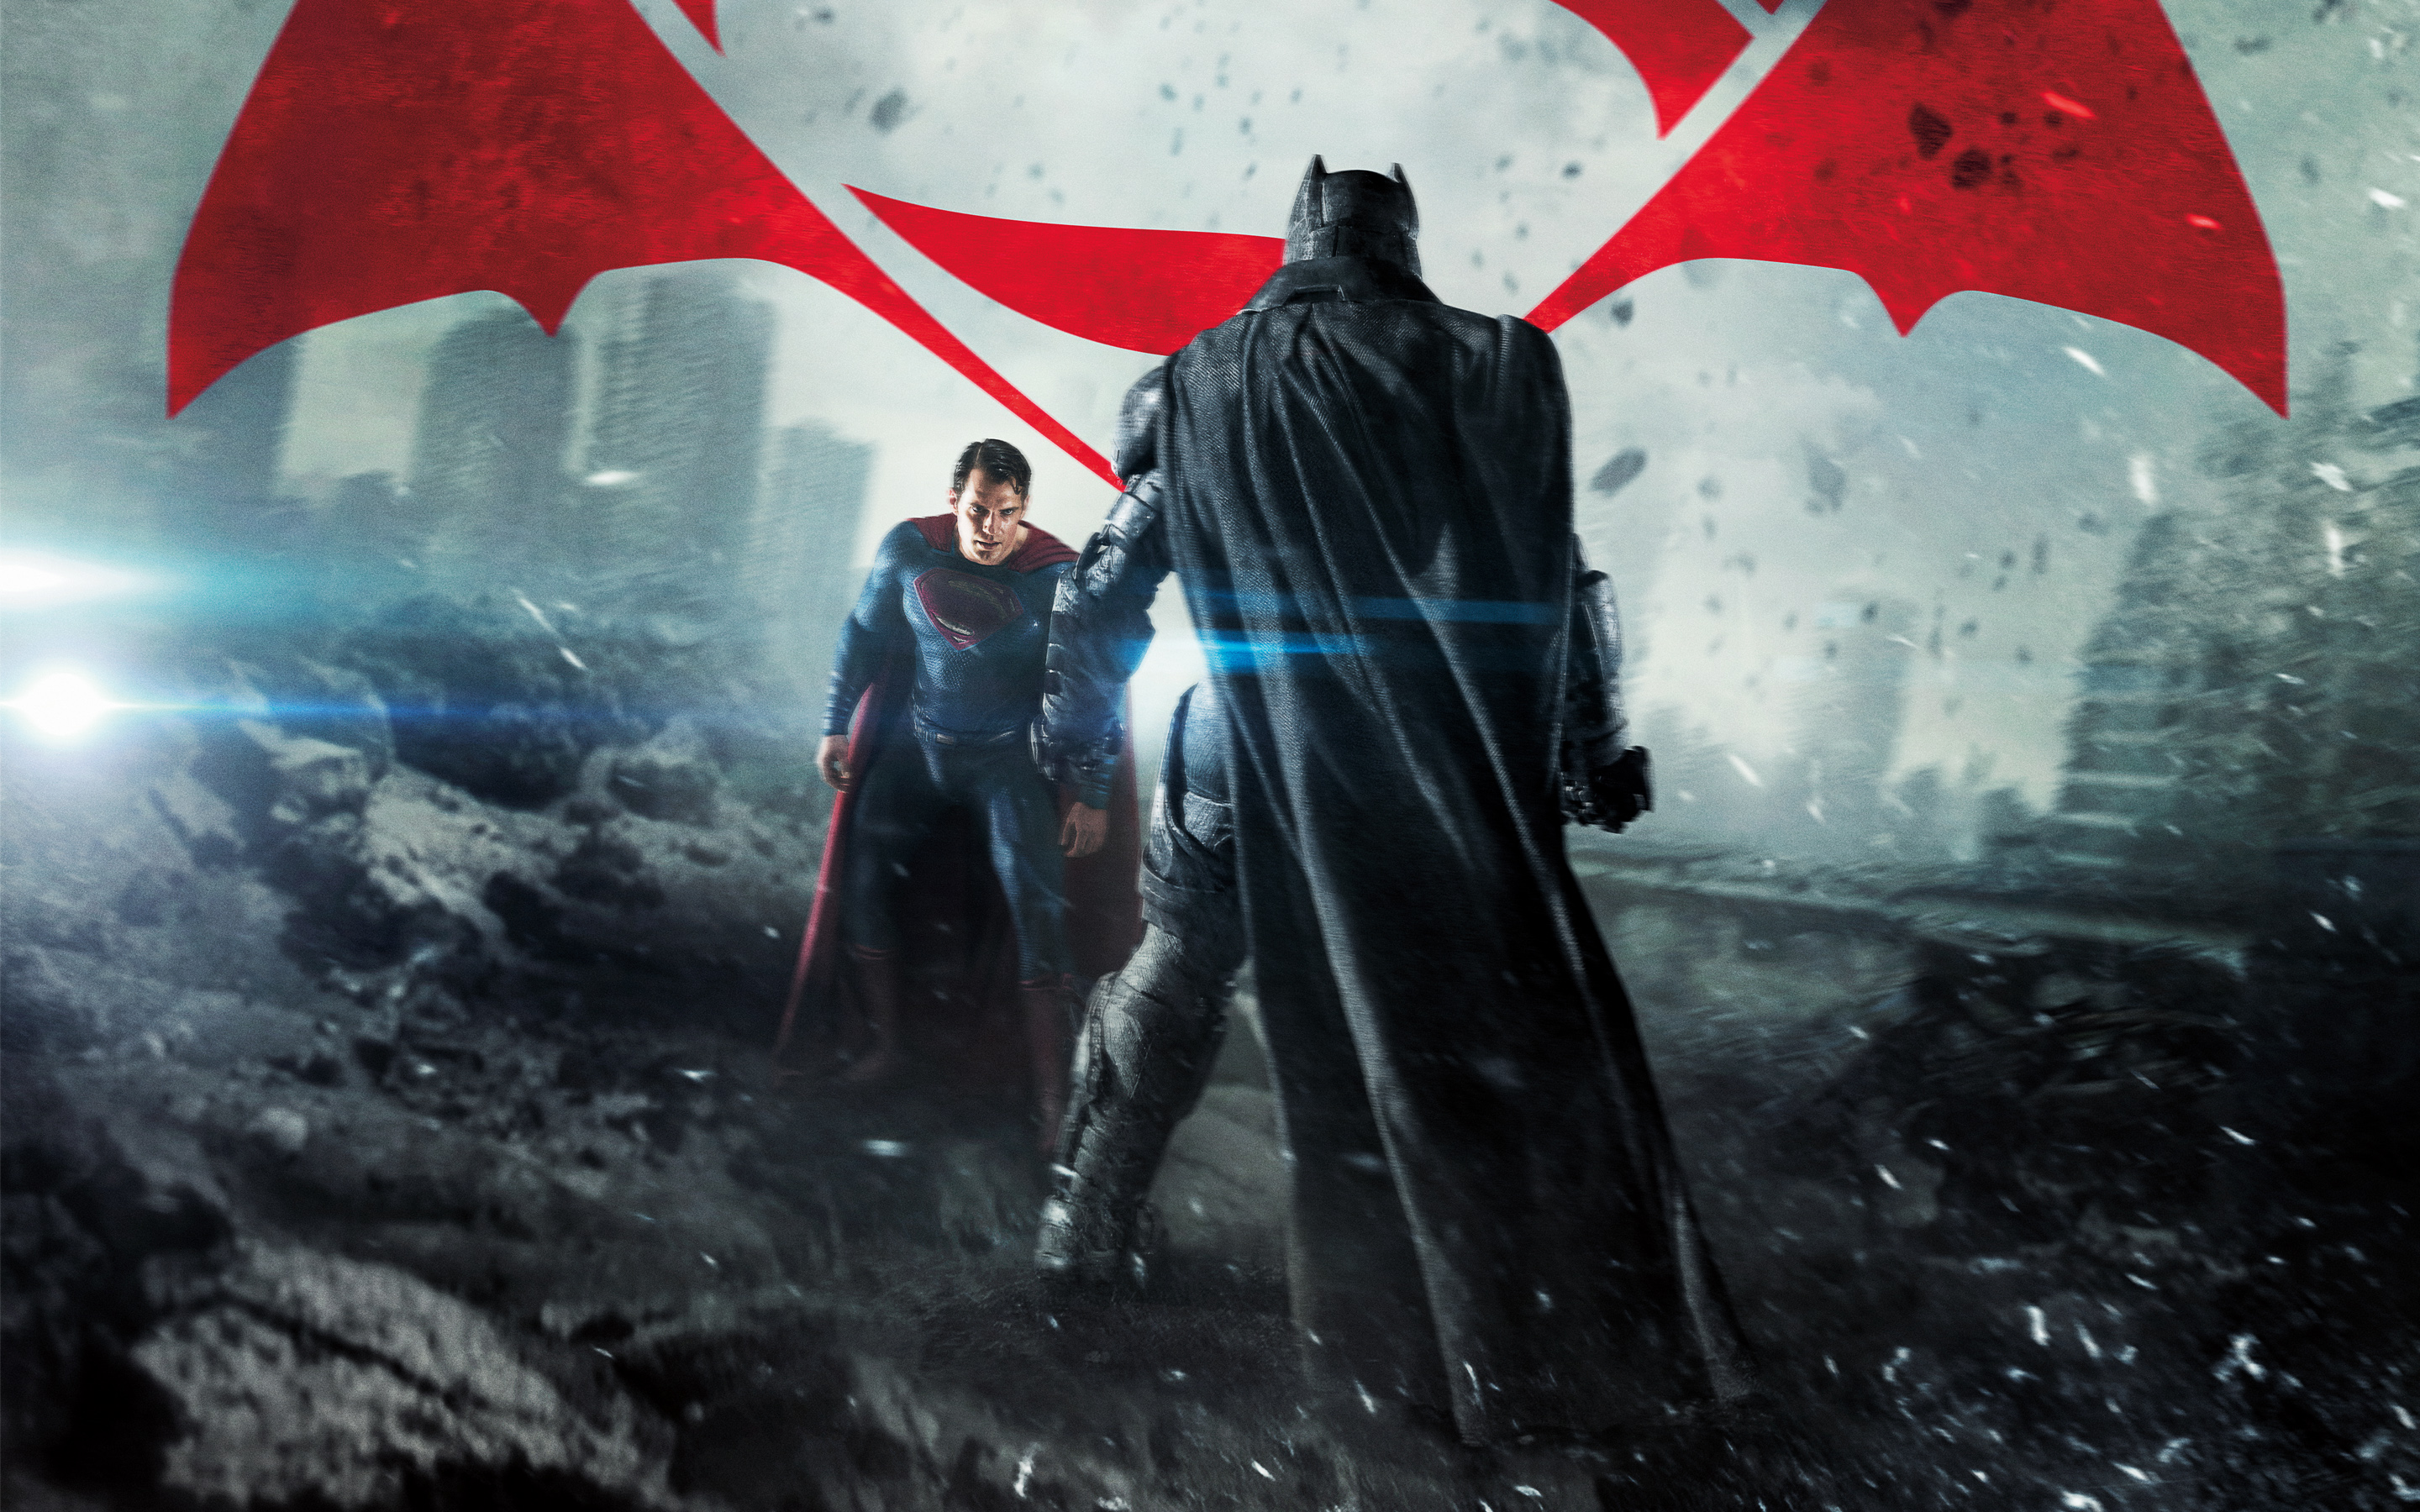 Batman Vs Superman Wallpapers 4K 2880x1800 px   4USkY 2880x1800